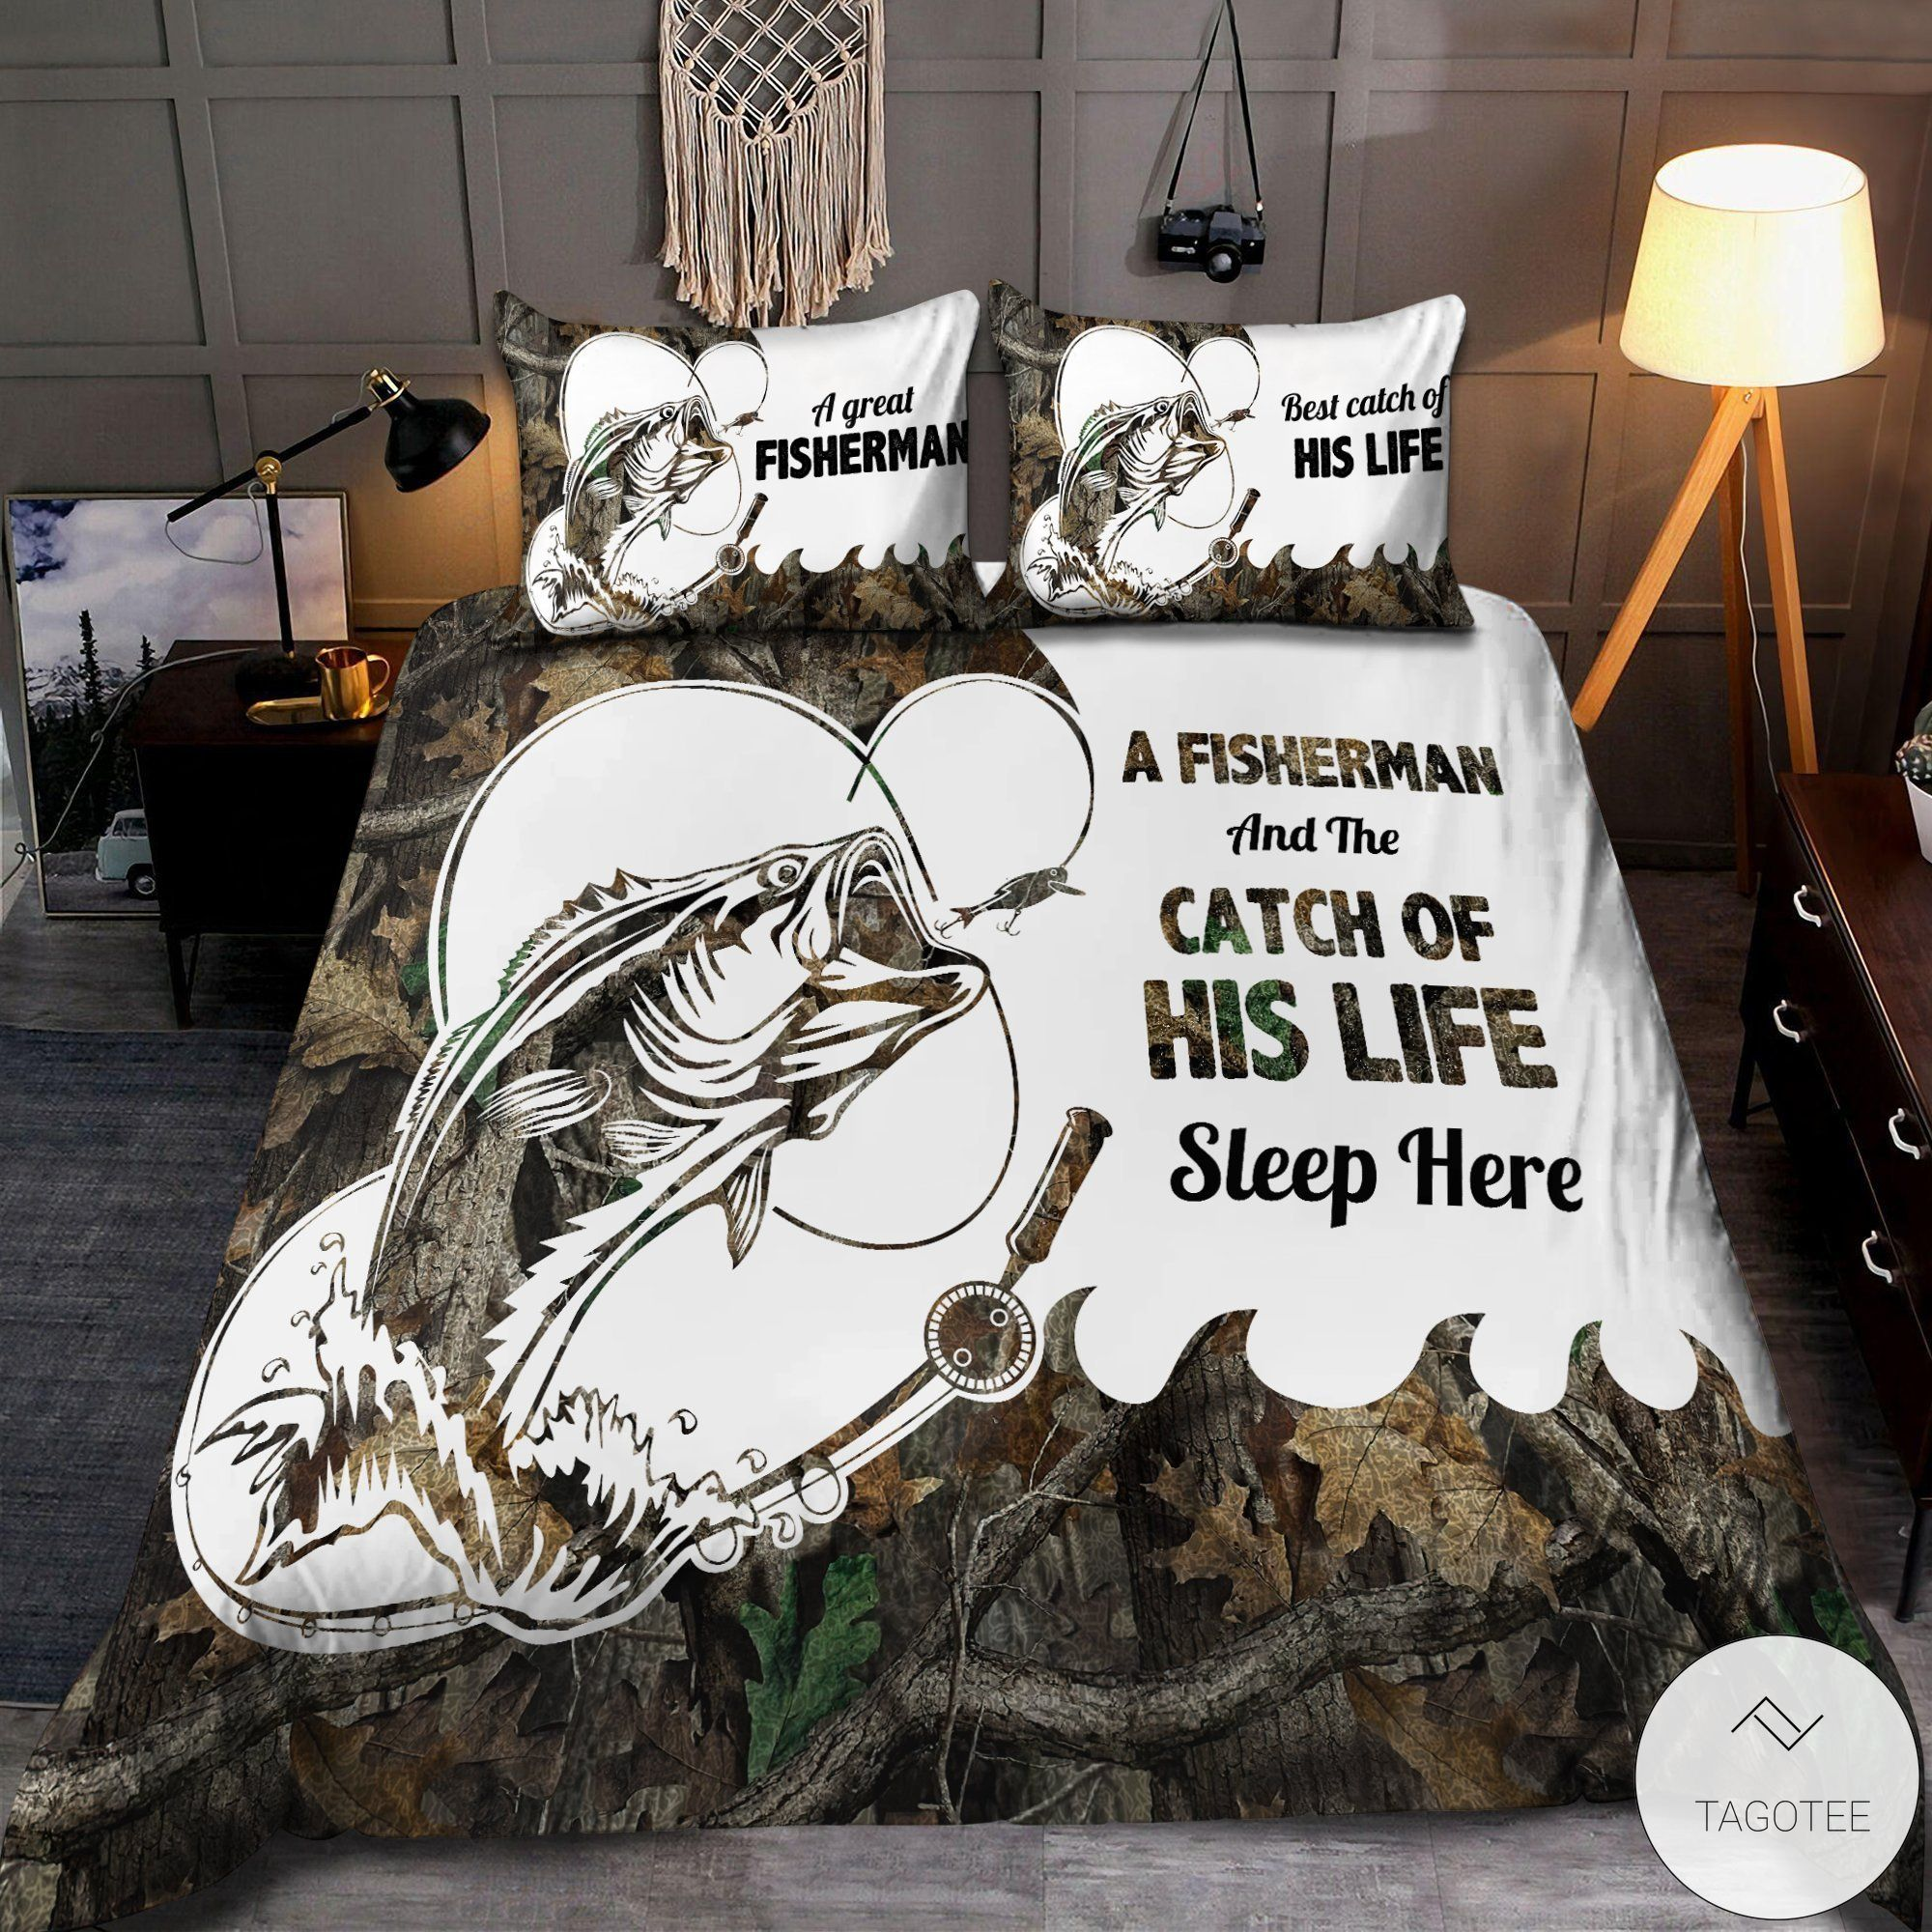 A fisherman and the catch of his life live here sleep here bedding sets2